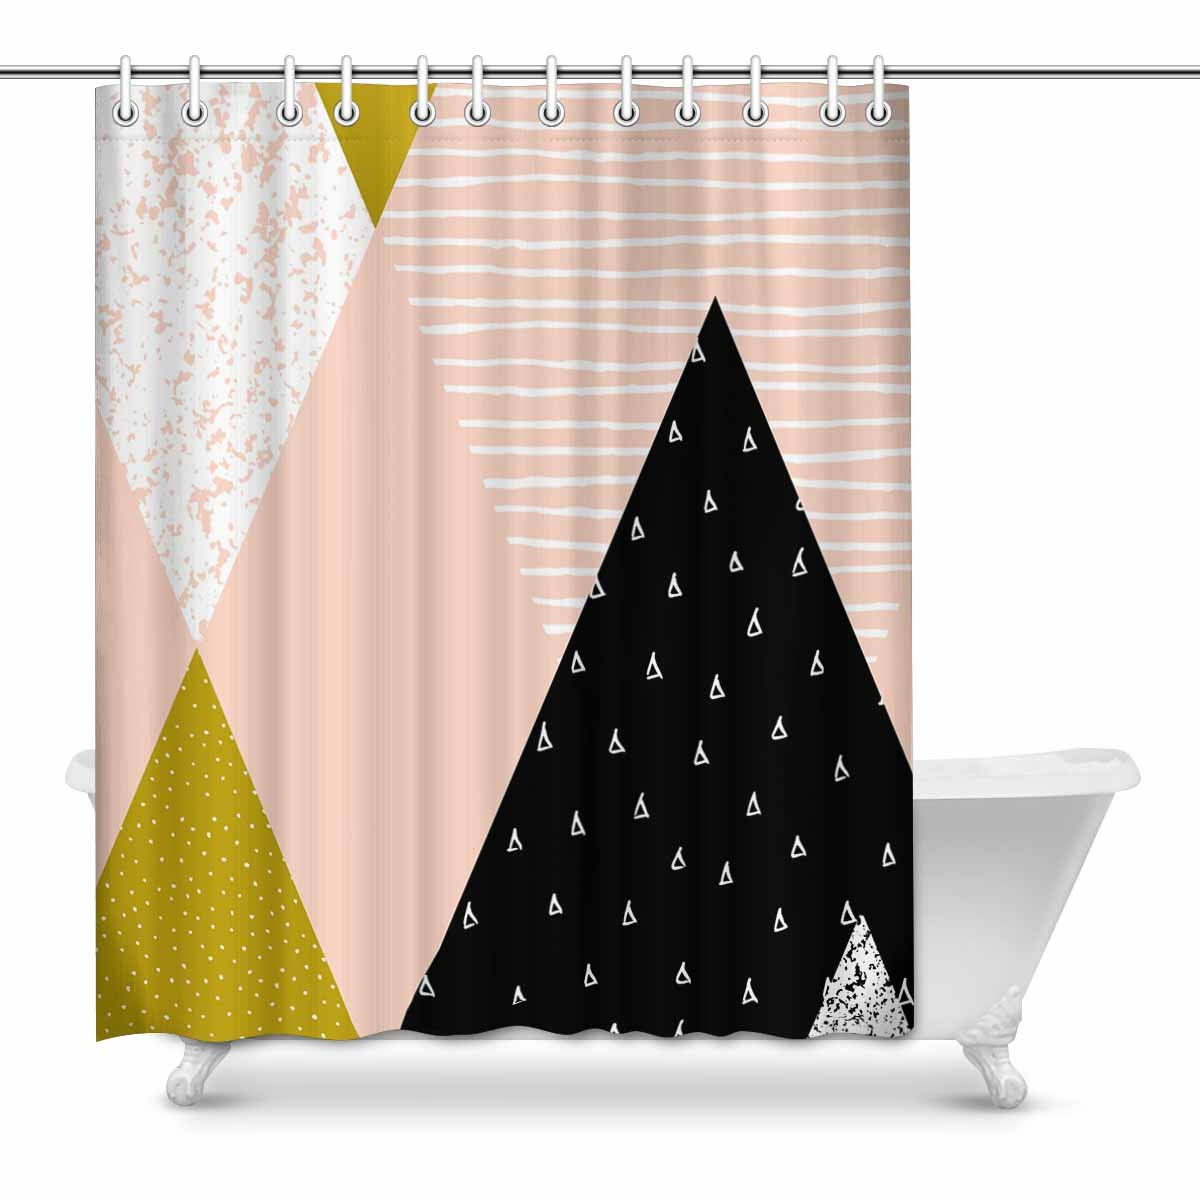 mkhert abstract geometric triangle composition in black white gold and pink house decor shower curtain for bathroom shower curtain set 60x72 inch